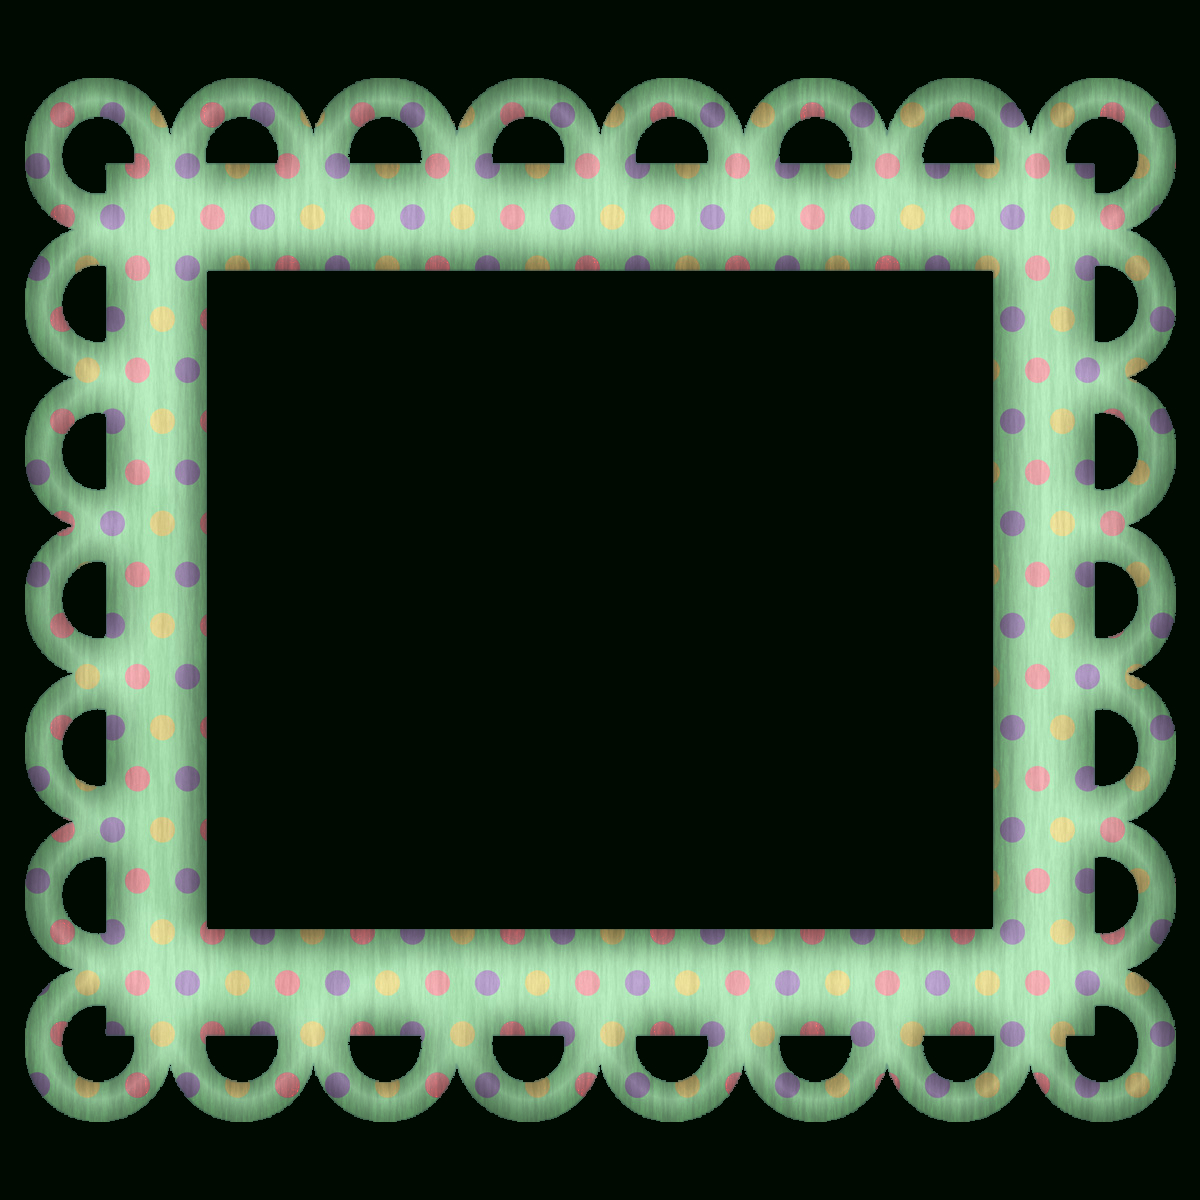 Picture Frames For Scrapbooking Free   Free Green Polka Digi - Free Printable Frames For Scrapbooking